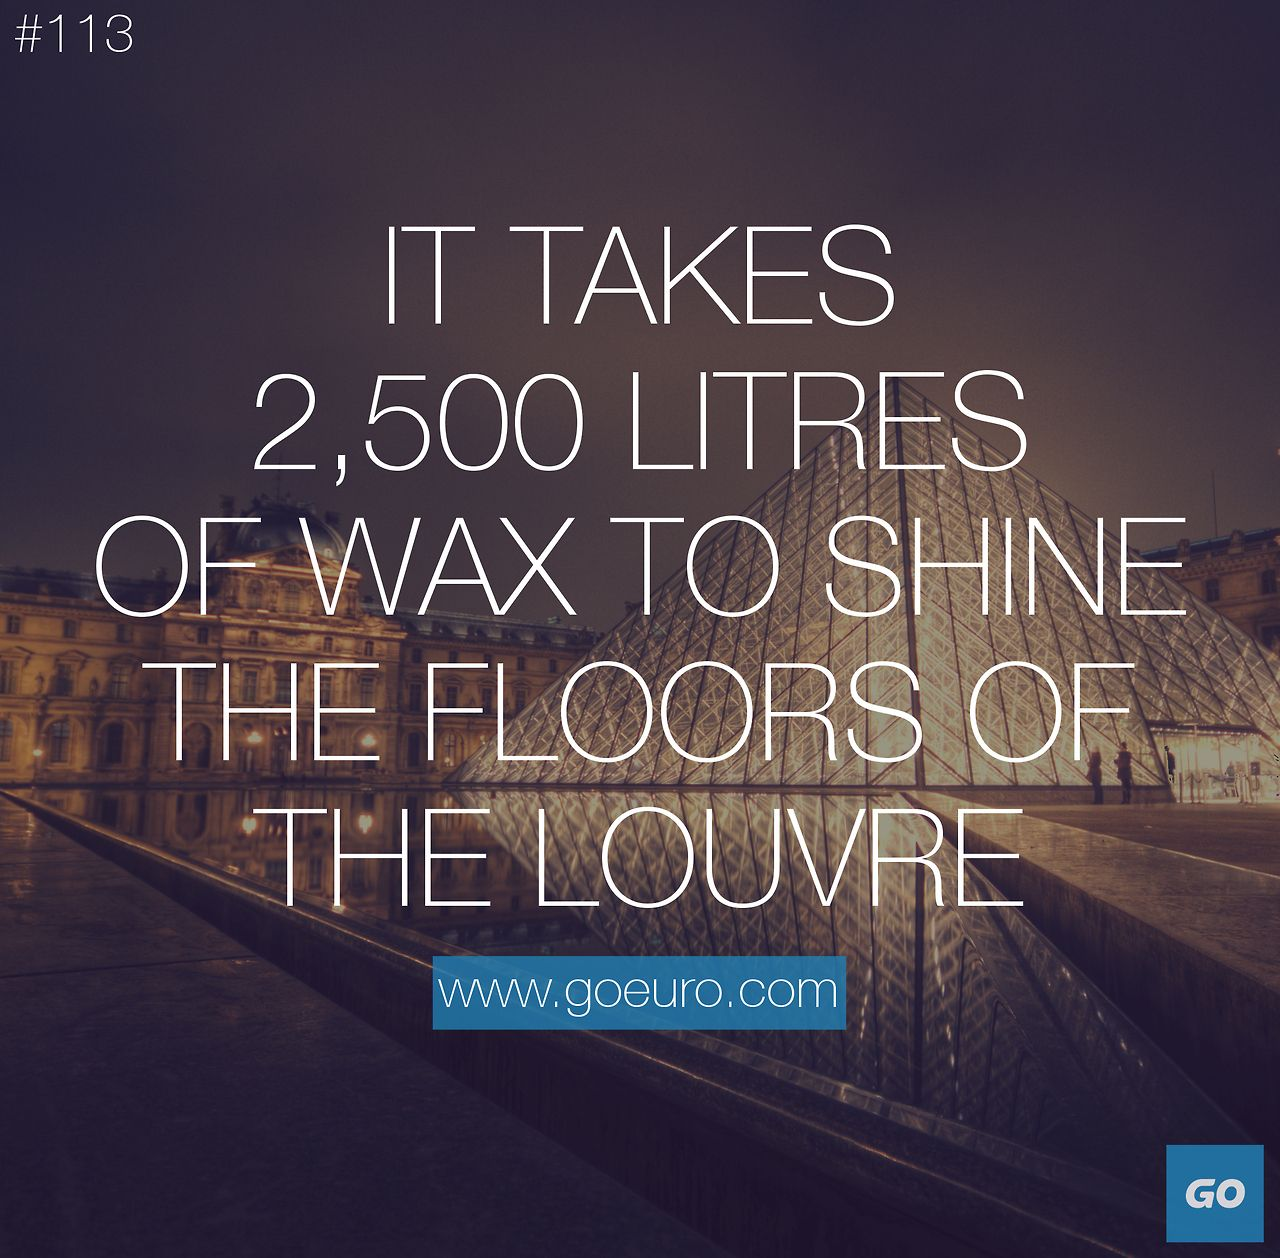 It takes 2,500 litres of wax to shine the floors of the Louvre. #traveltrivia #paris